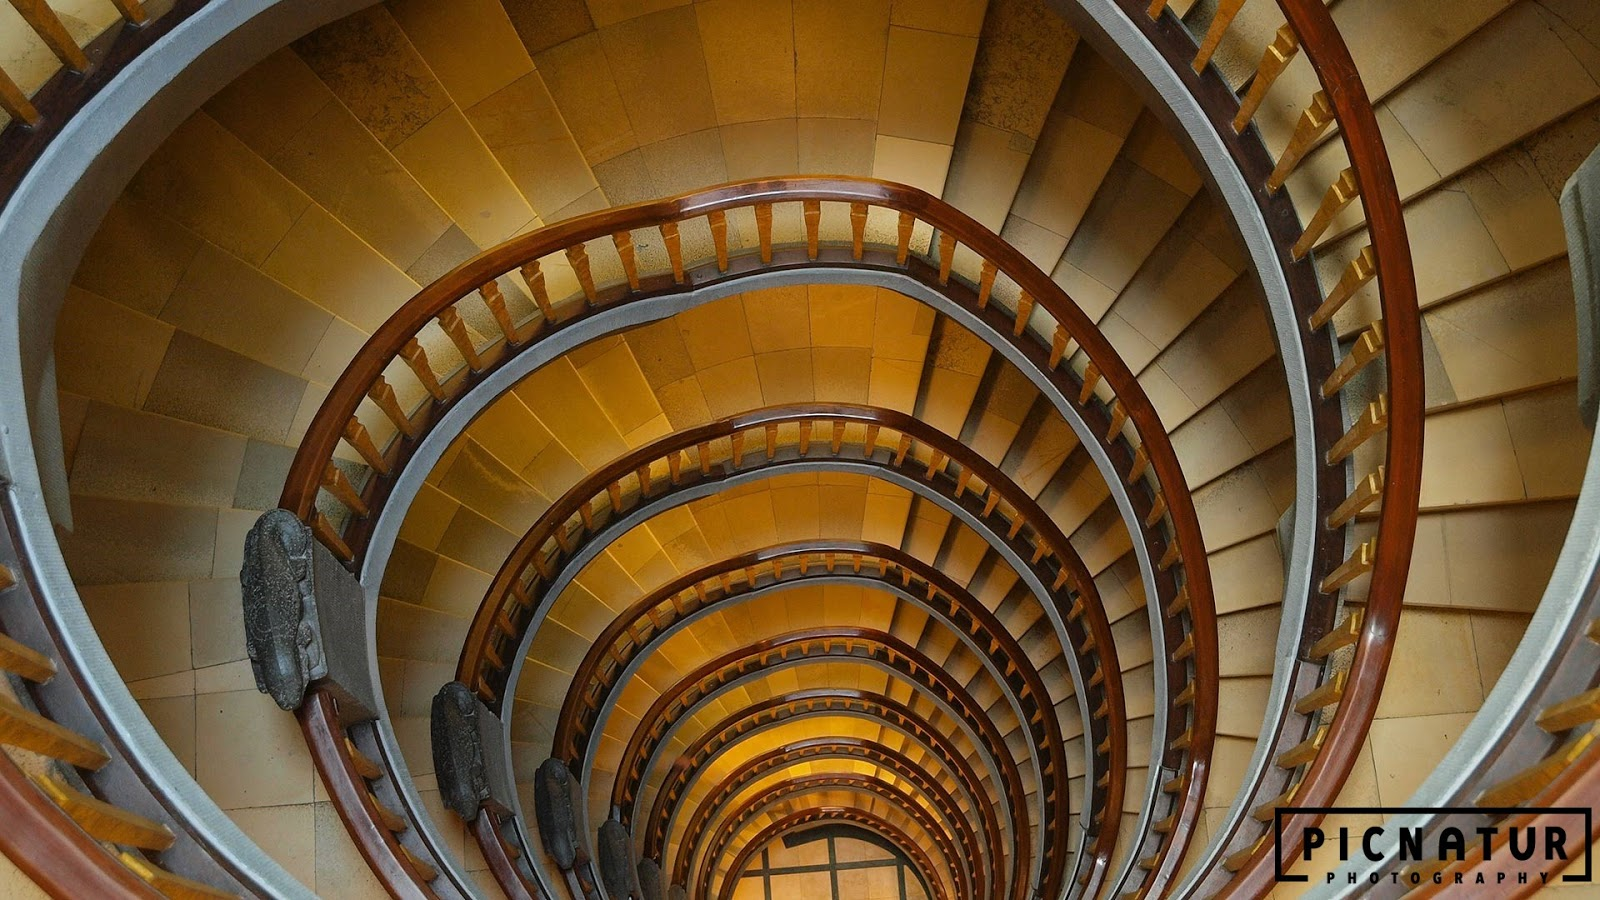 A spiral staircase in Hamburg, Germany